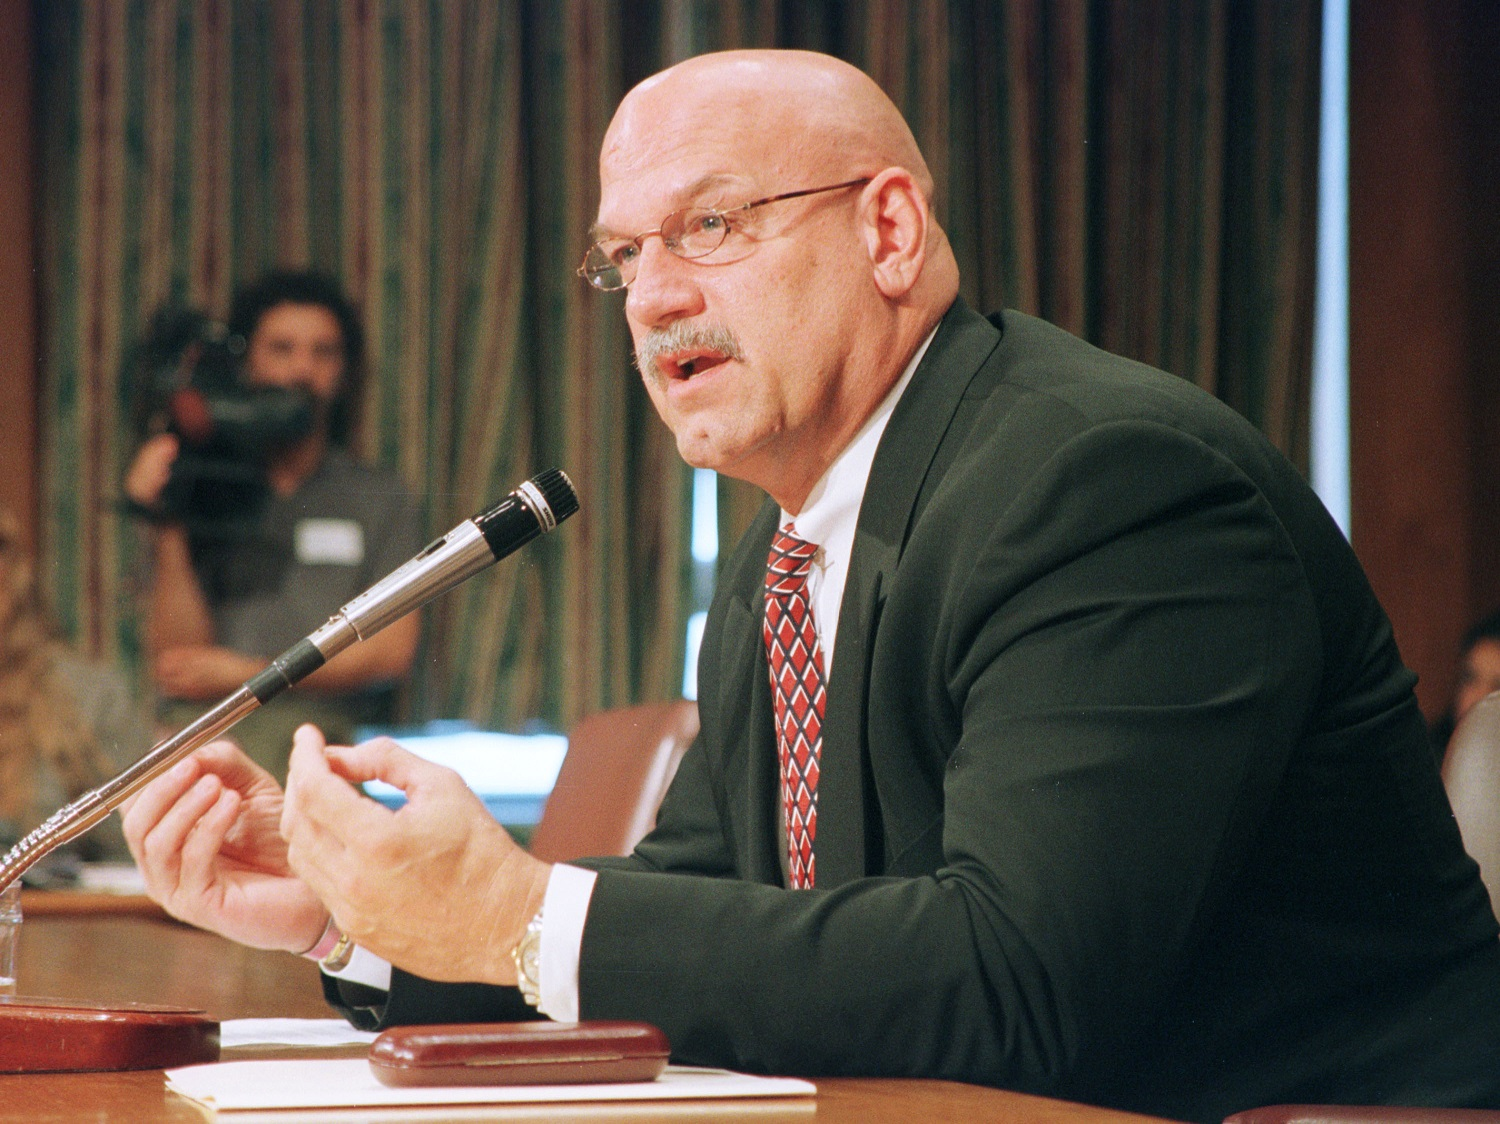 """Jesse """"The Body"""" Ventura scored an improbable upset when he ran for governor of Minnesota in 1998. 